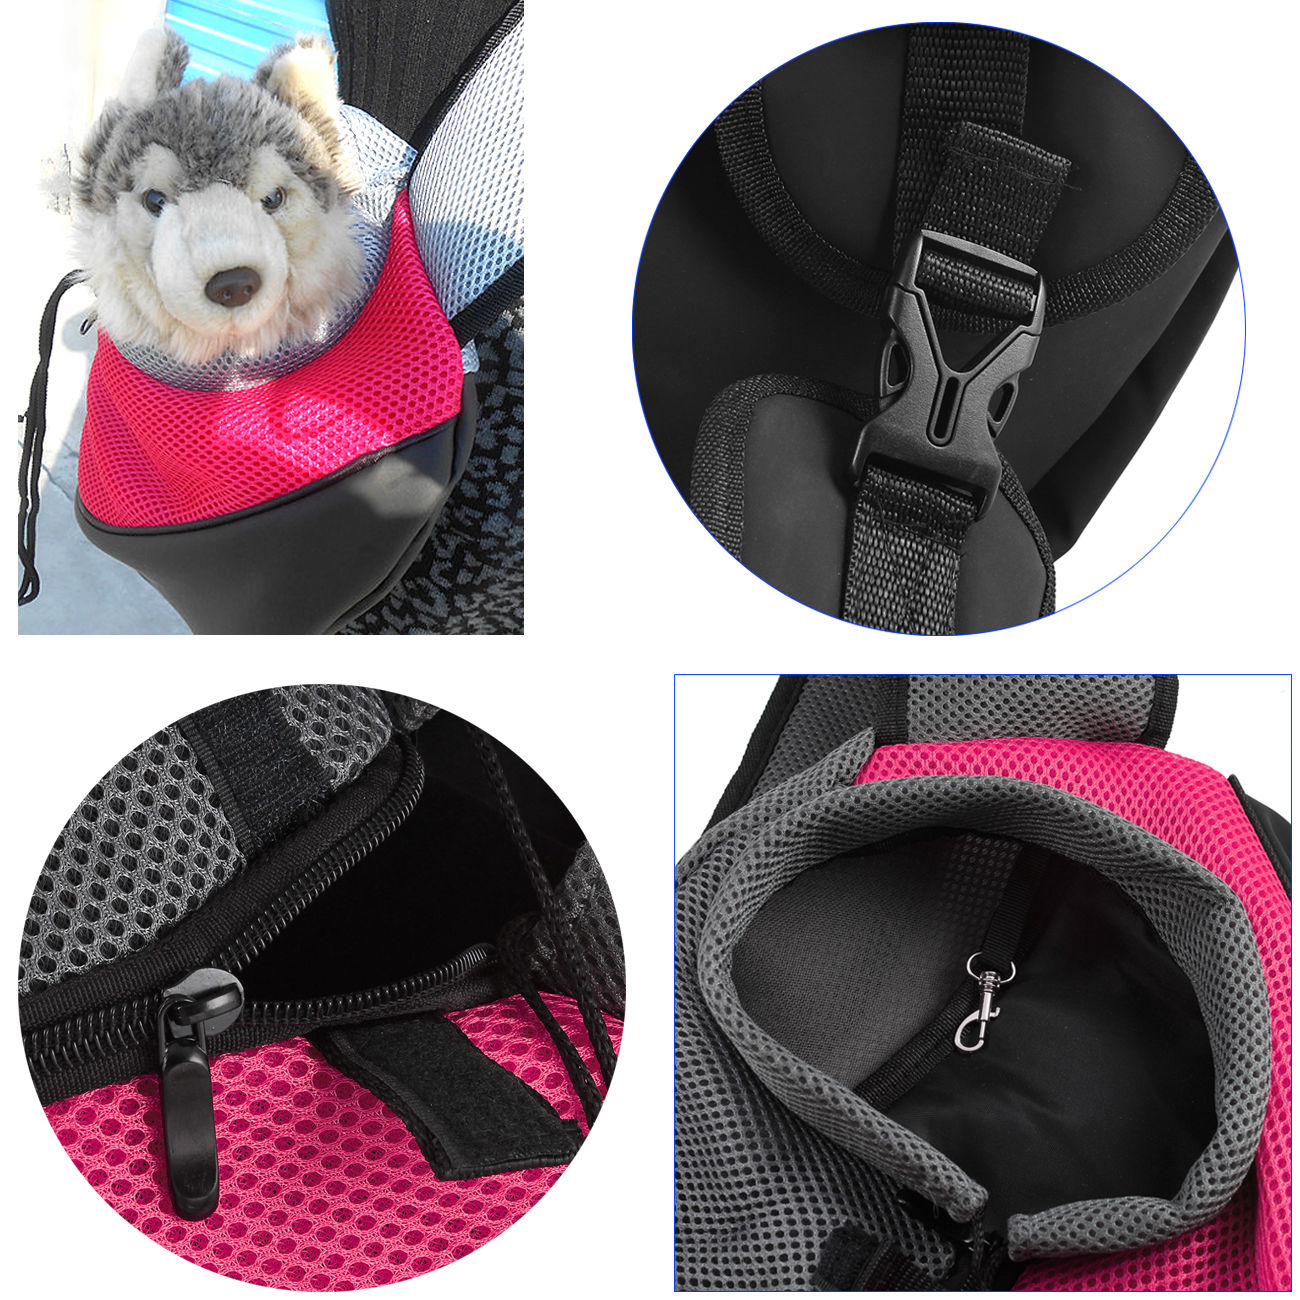 1Pc Convenient Washable Carrier for Small Pets